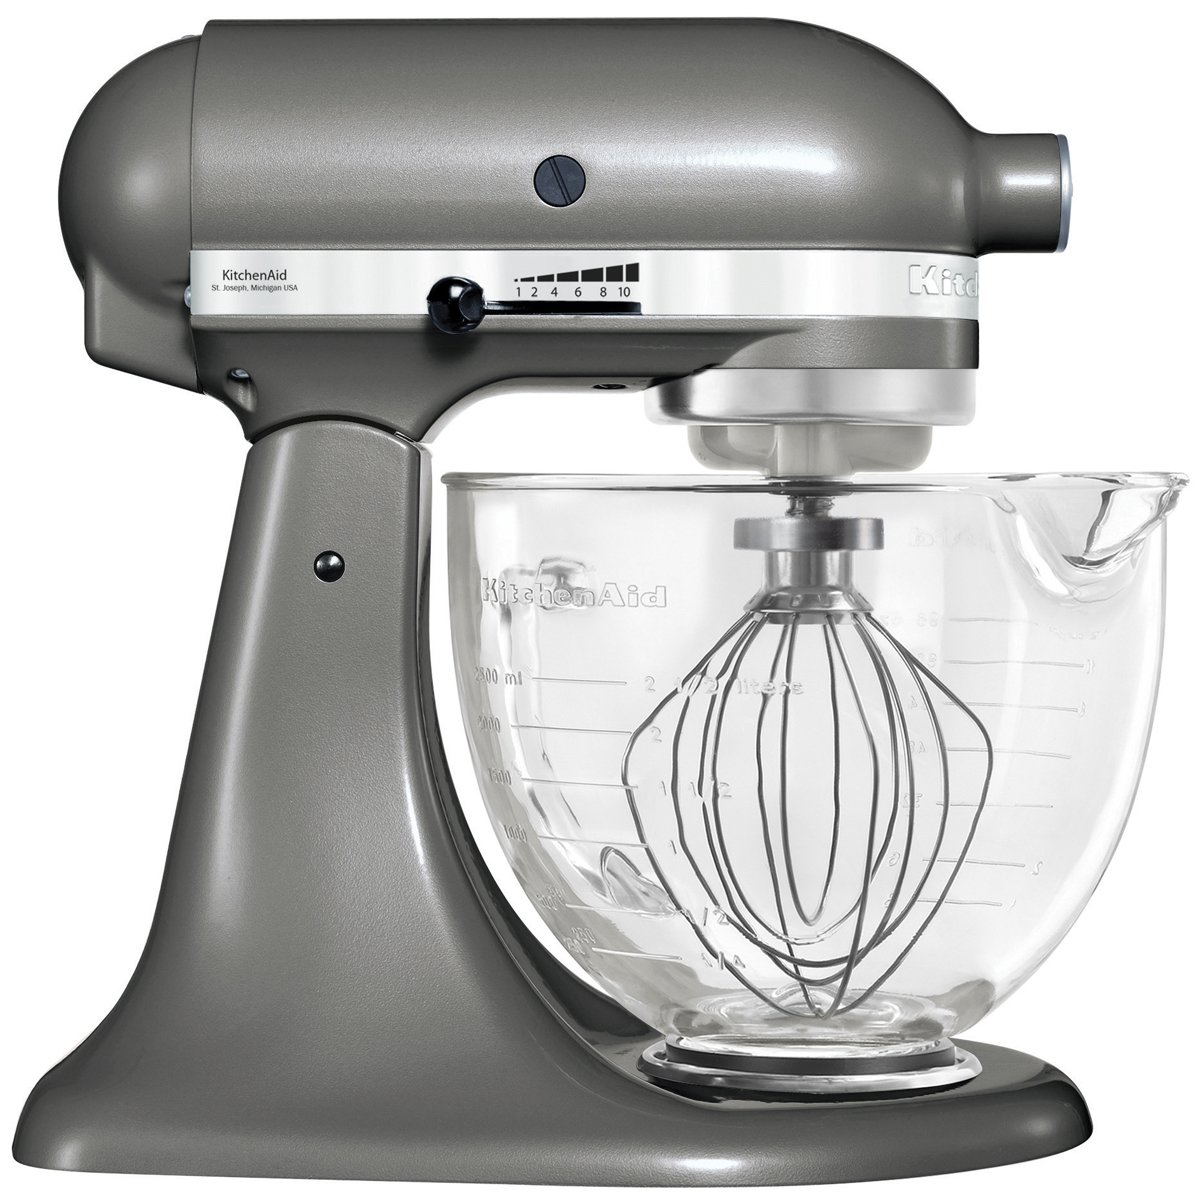 details about new kitchenaid 91135 ksm156 stand mixer